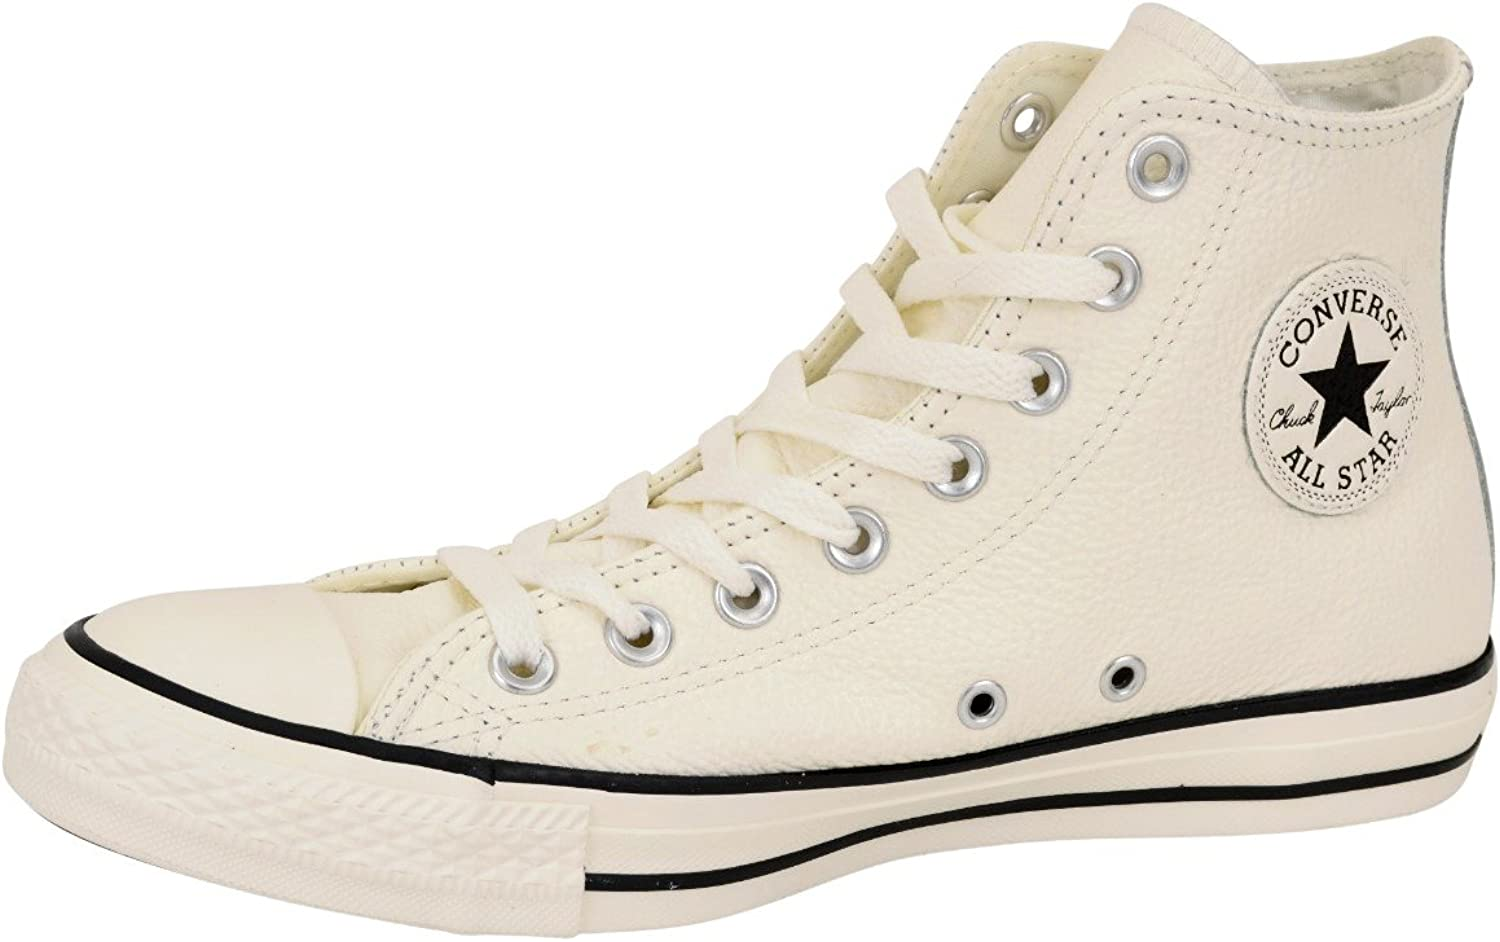 Converse Trainer - Men's 157469C High Top Tumble Leather Trainer in Off White